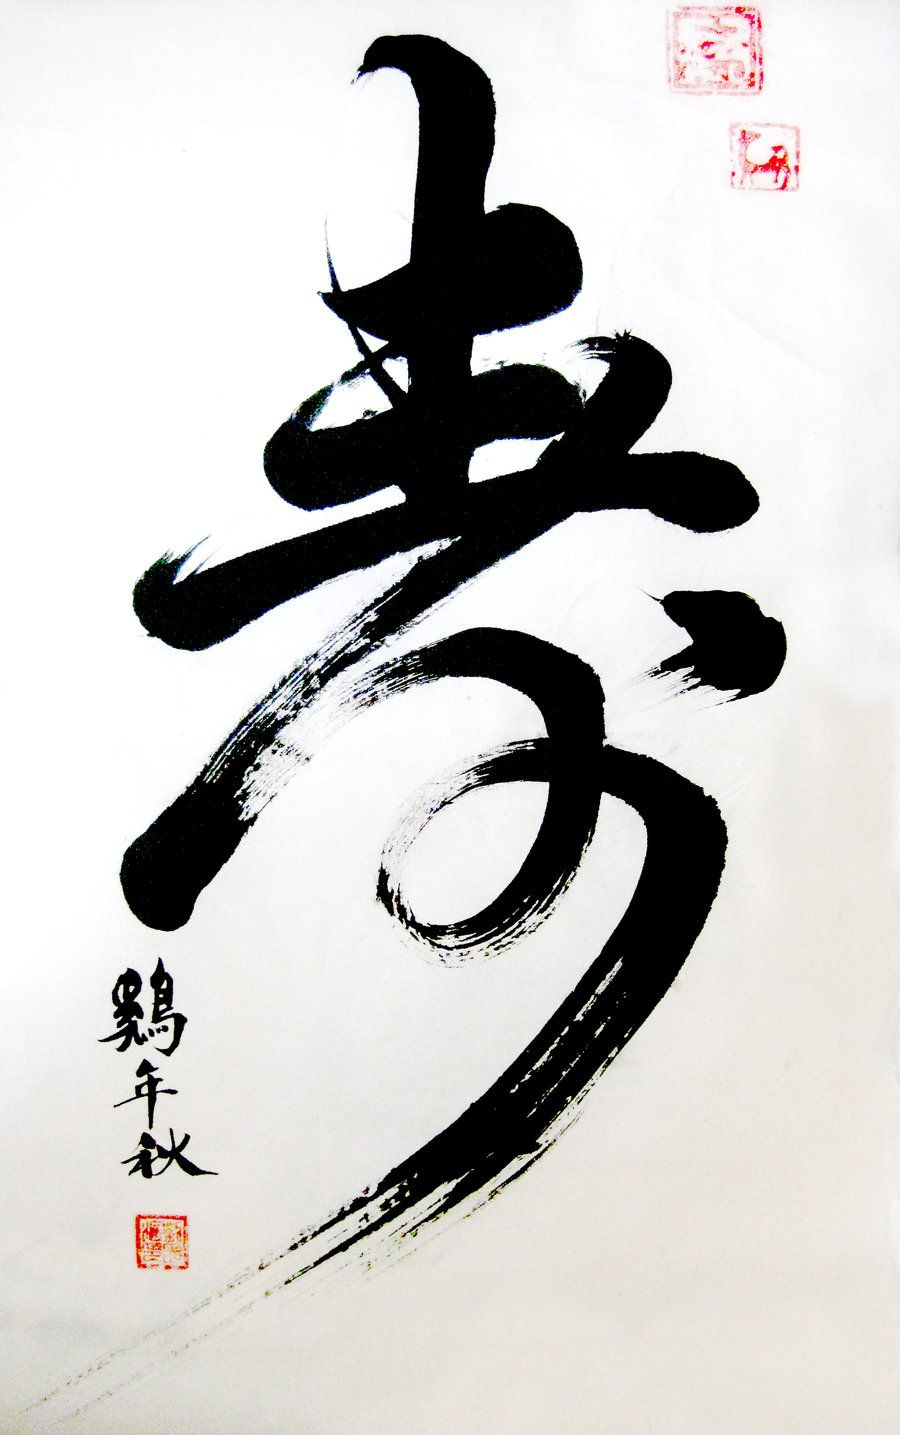 Chinese Calligraphy On Pinterest Japanese Calligraphy